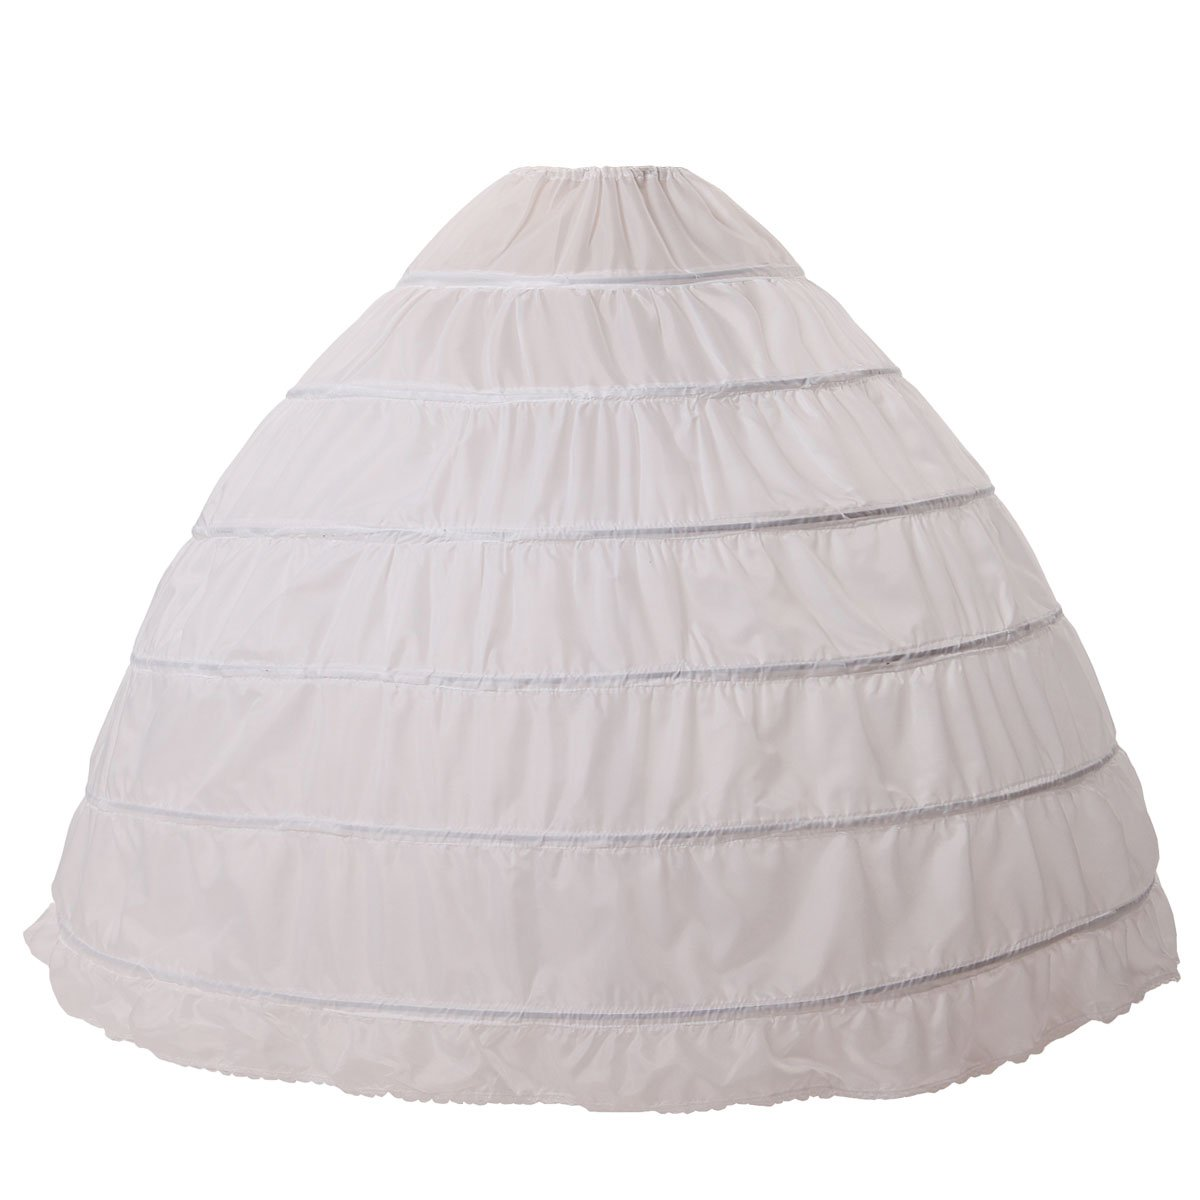 Amazon Com 8 Layer Tulle Hoopless Bridal Petticoat Ball Gown